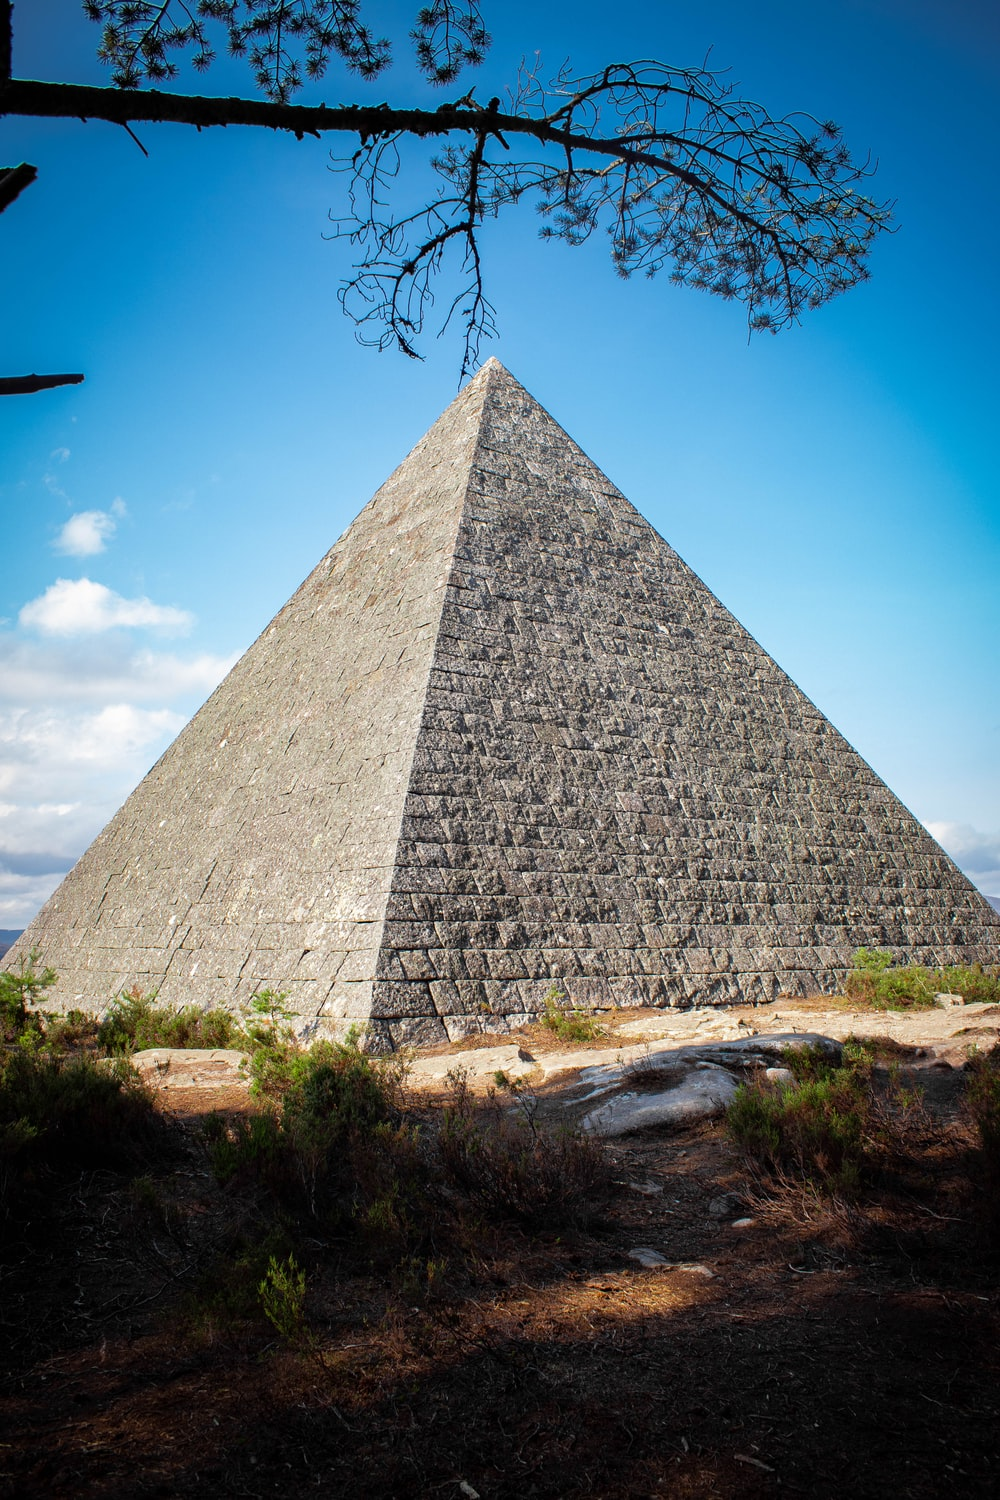 gray pyramid under blue sky during daytime